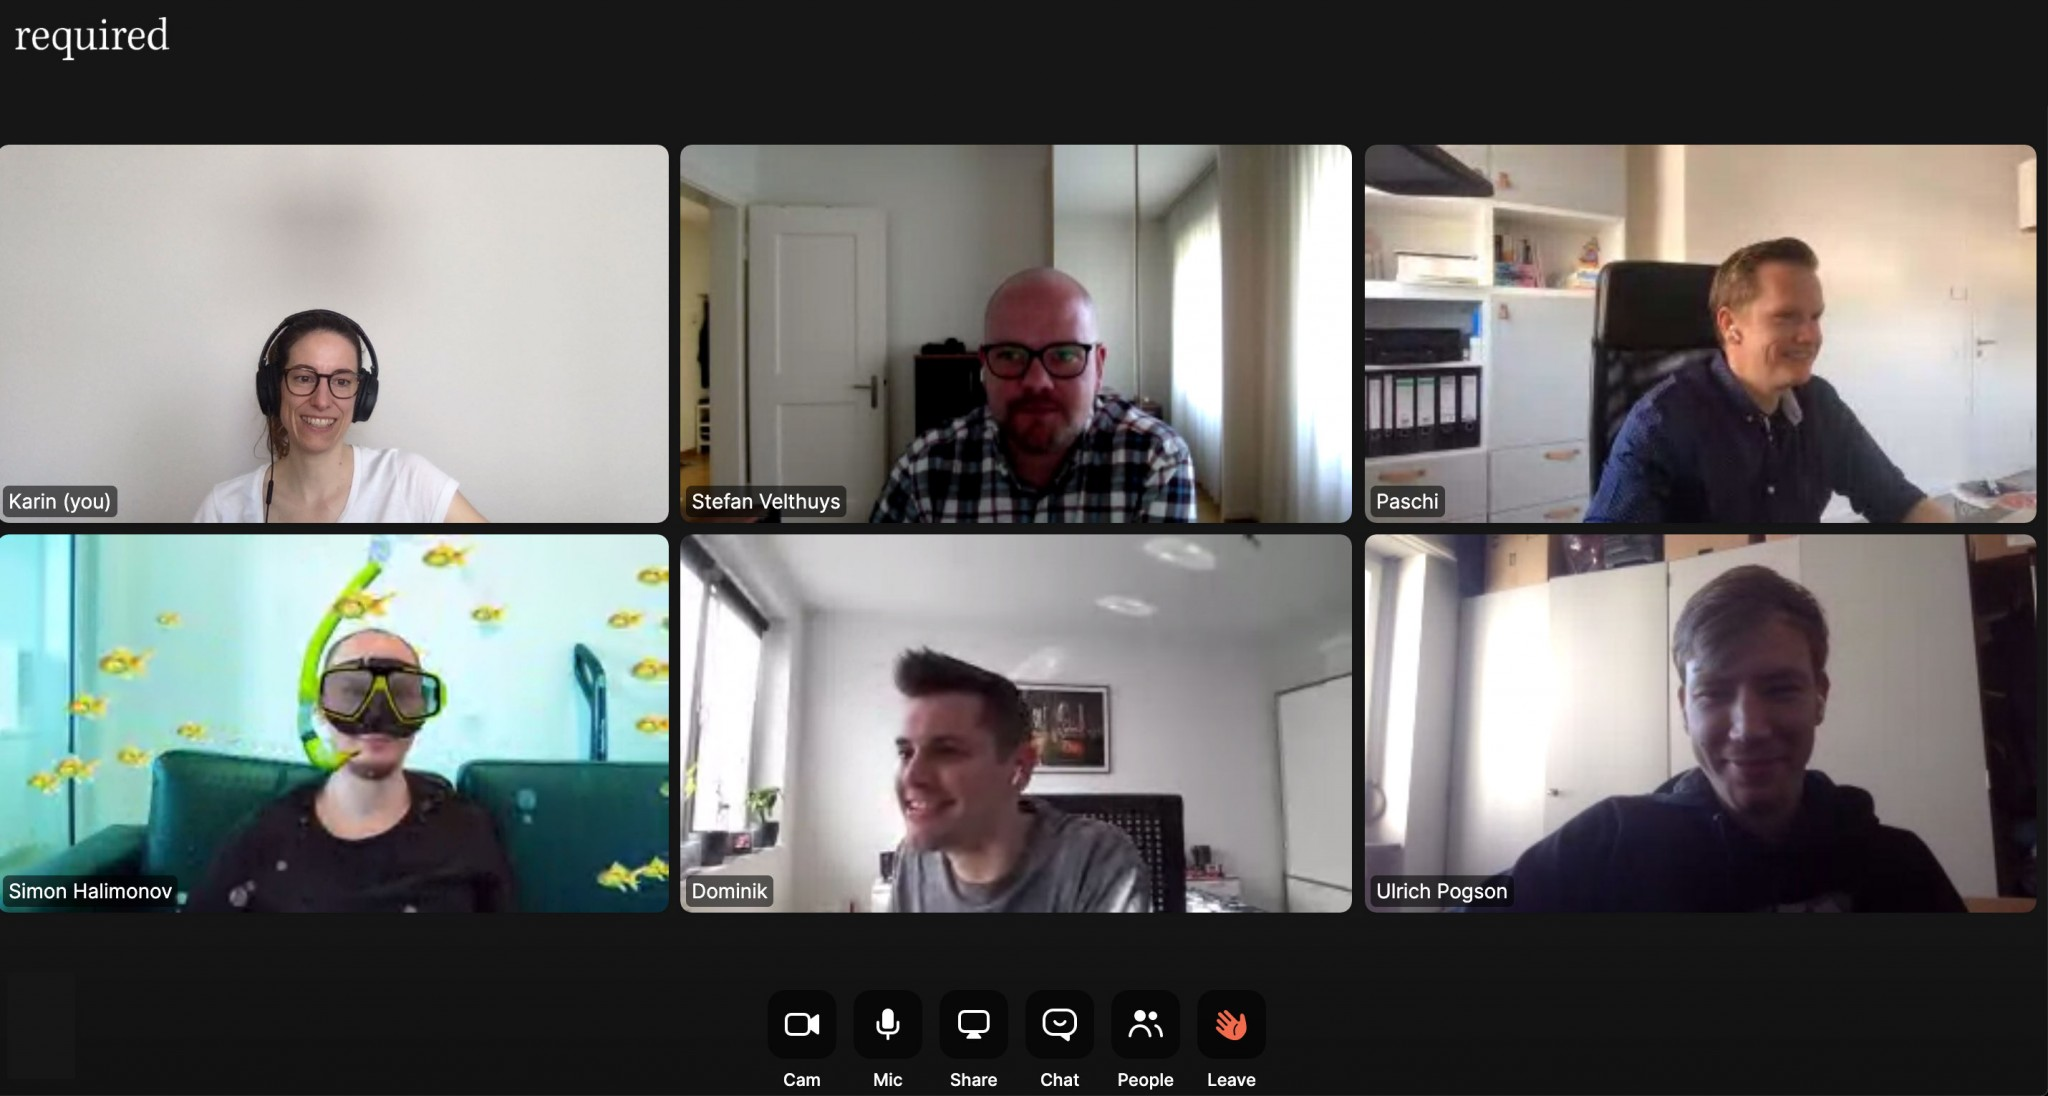 Screenshot von einem Video Meeting mit der Software Zoom